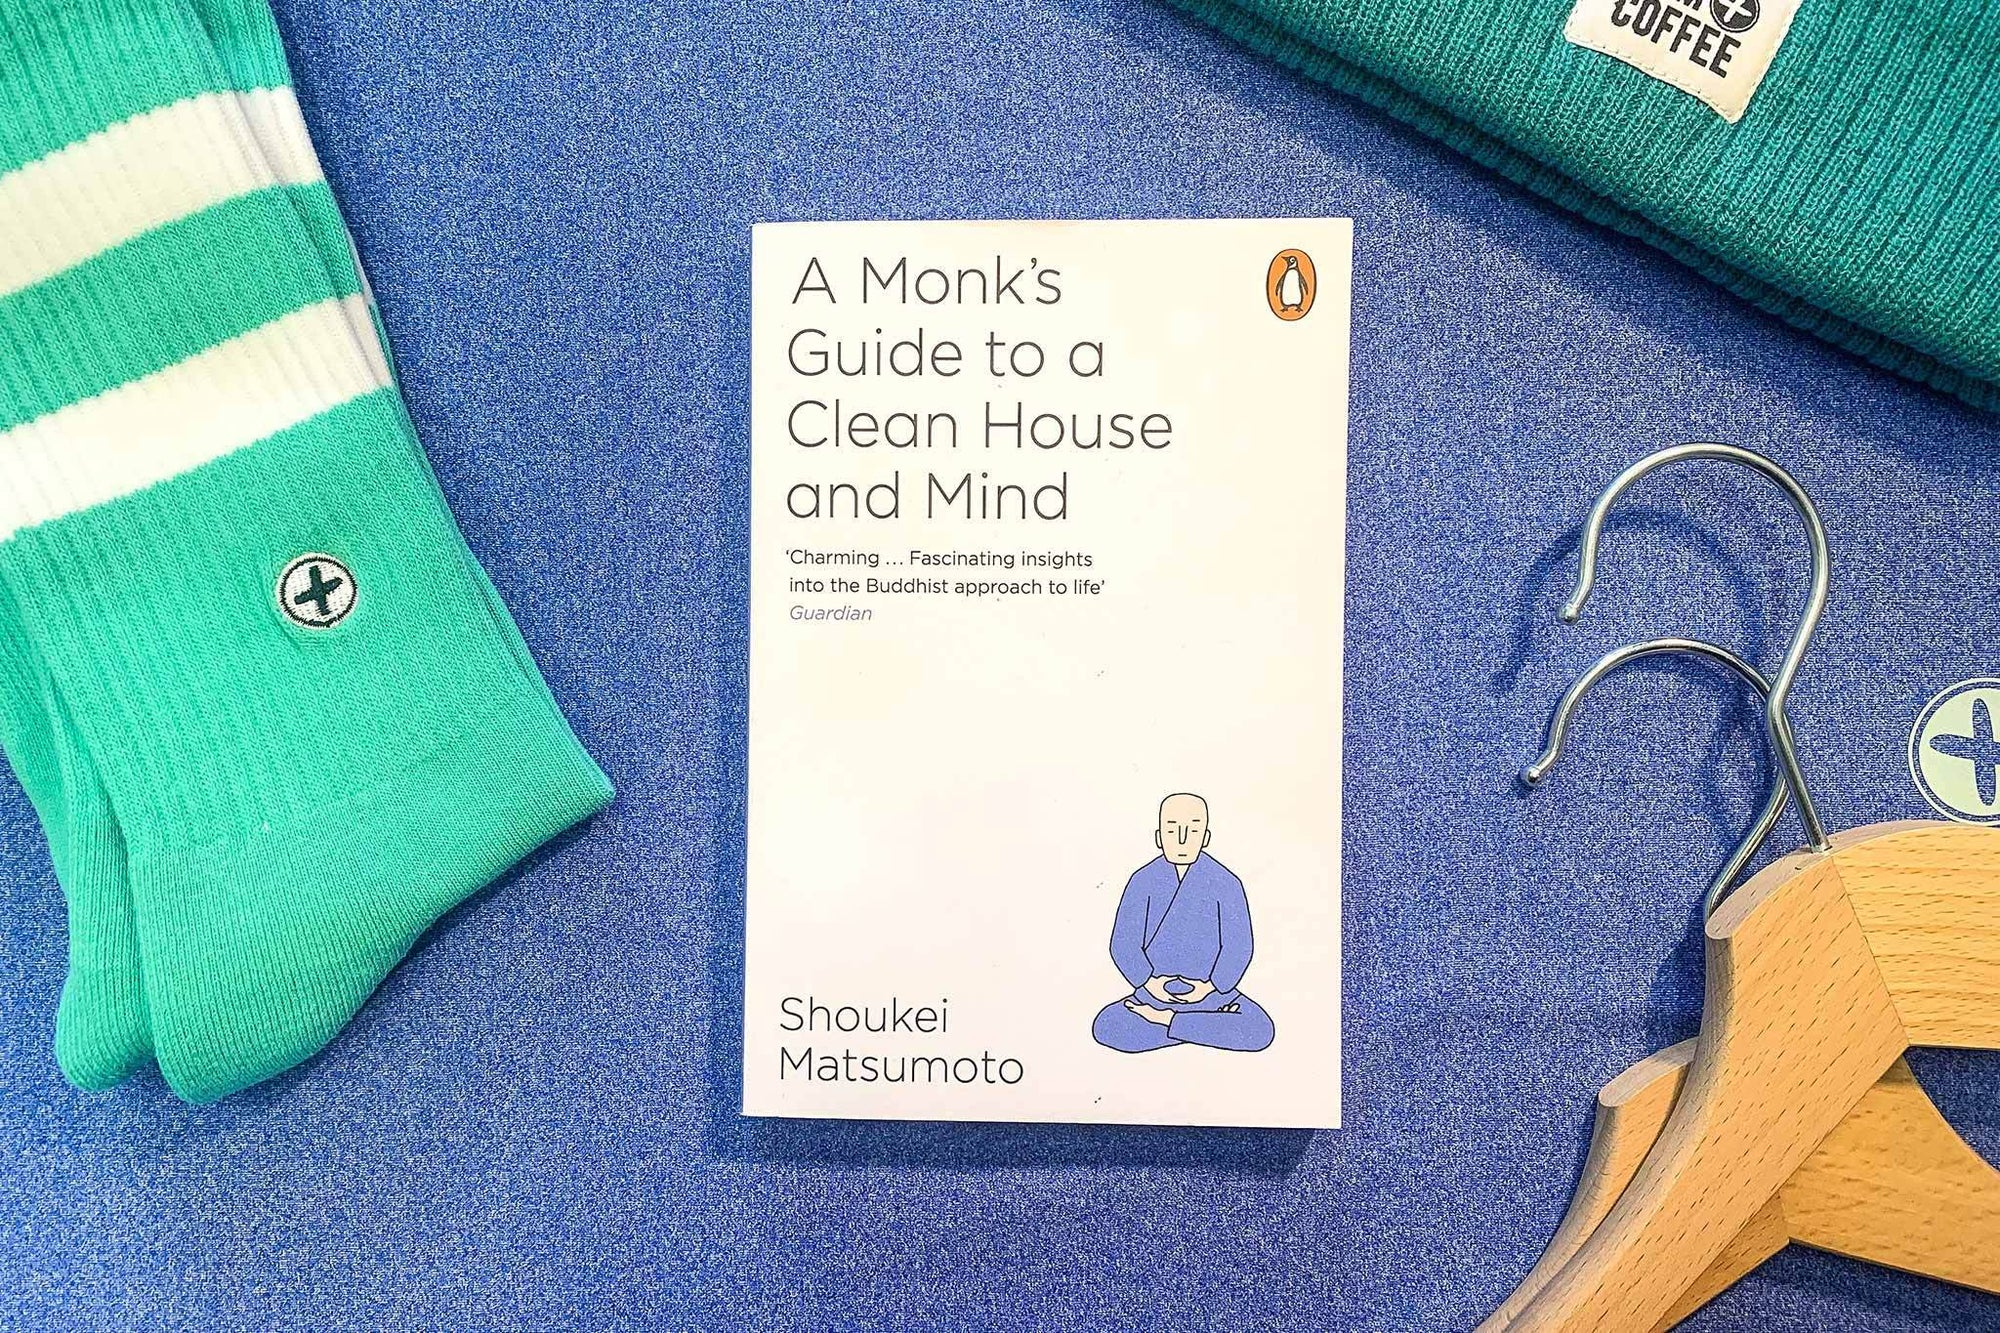 Book Review of A Monk's Guide to a Clean House and Mind